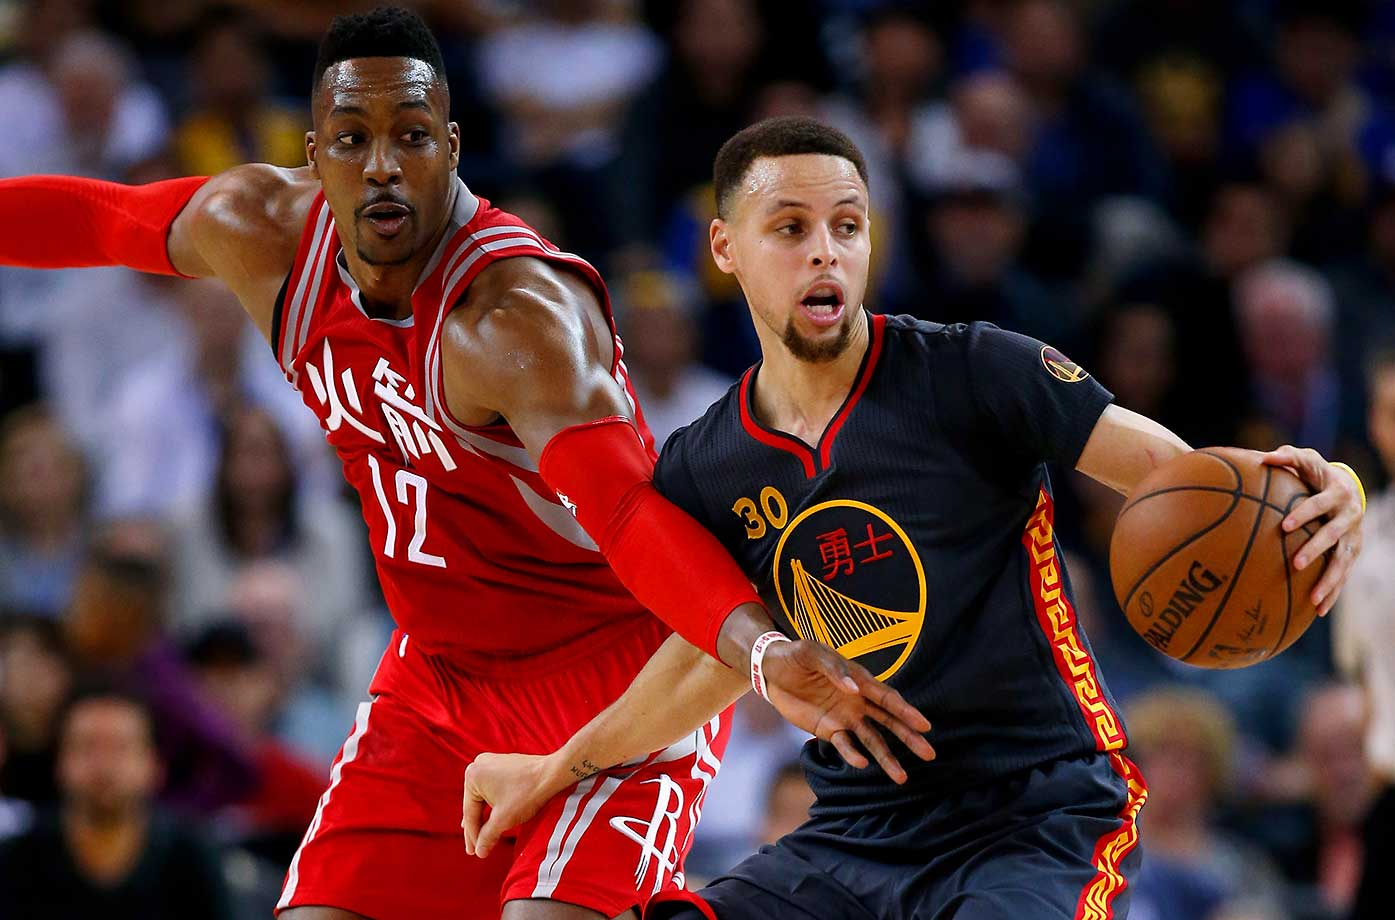 Dwight Howard of the Houston Rockets tries to steal the ball from Stephen Curry.